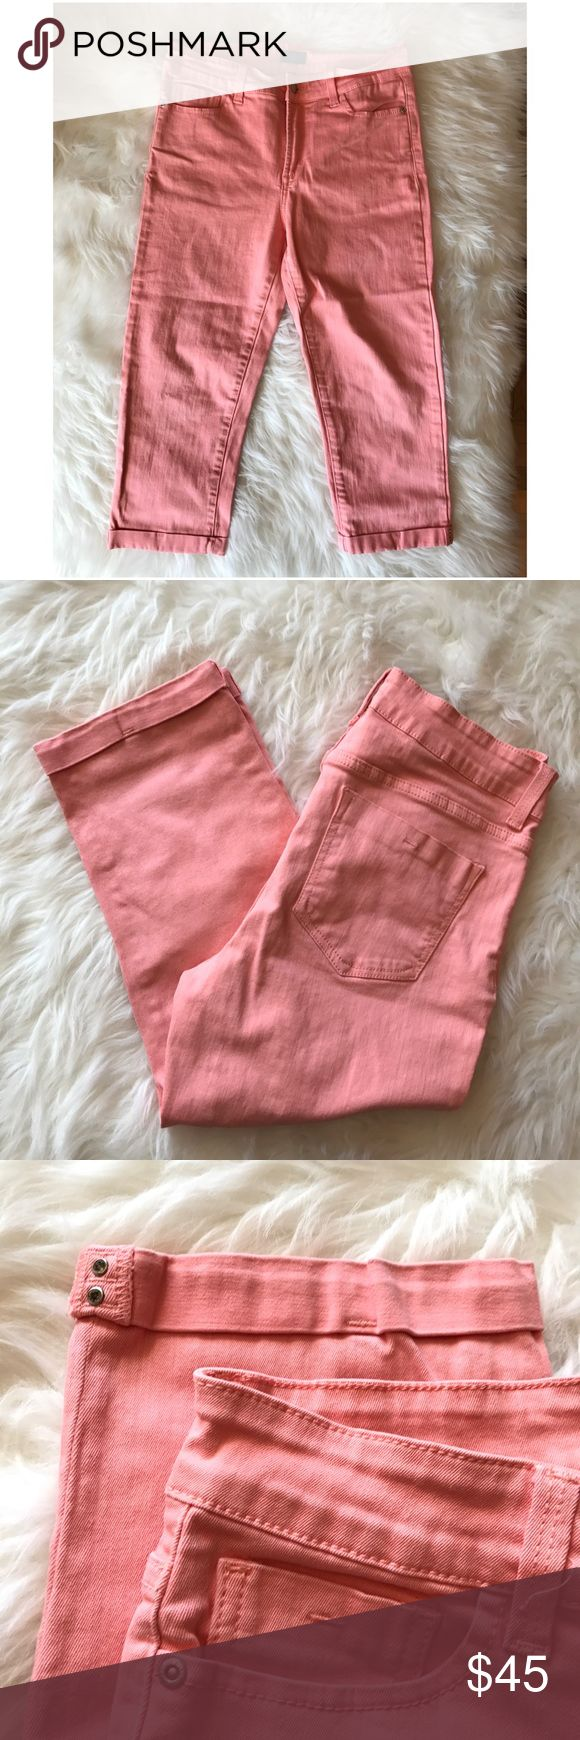 NYDJ Not Your Daughter Jeans Coral Capri sz 8 Perfect color for spring! Coral pair of capris by NYDJ in size 8. In excellent condition. Worn twice. NYDJ Jeans Ankle & Cropped